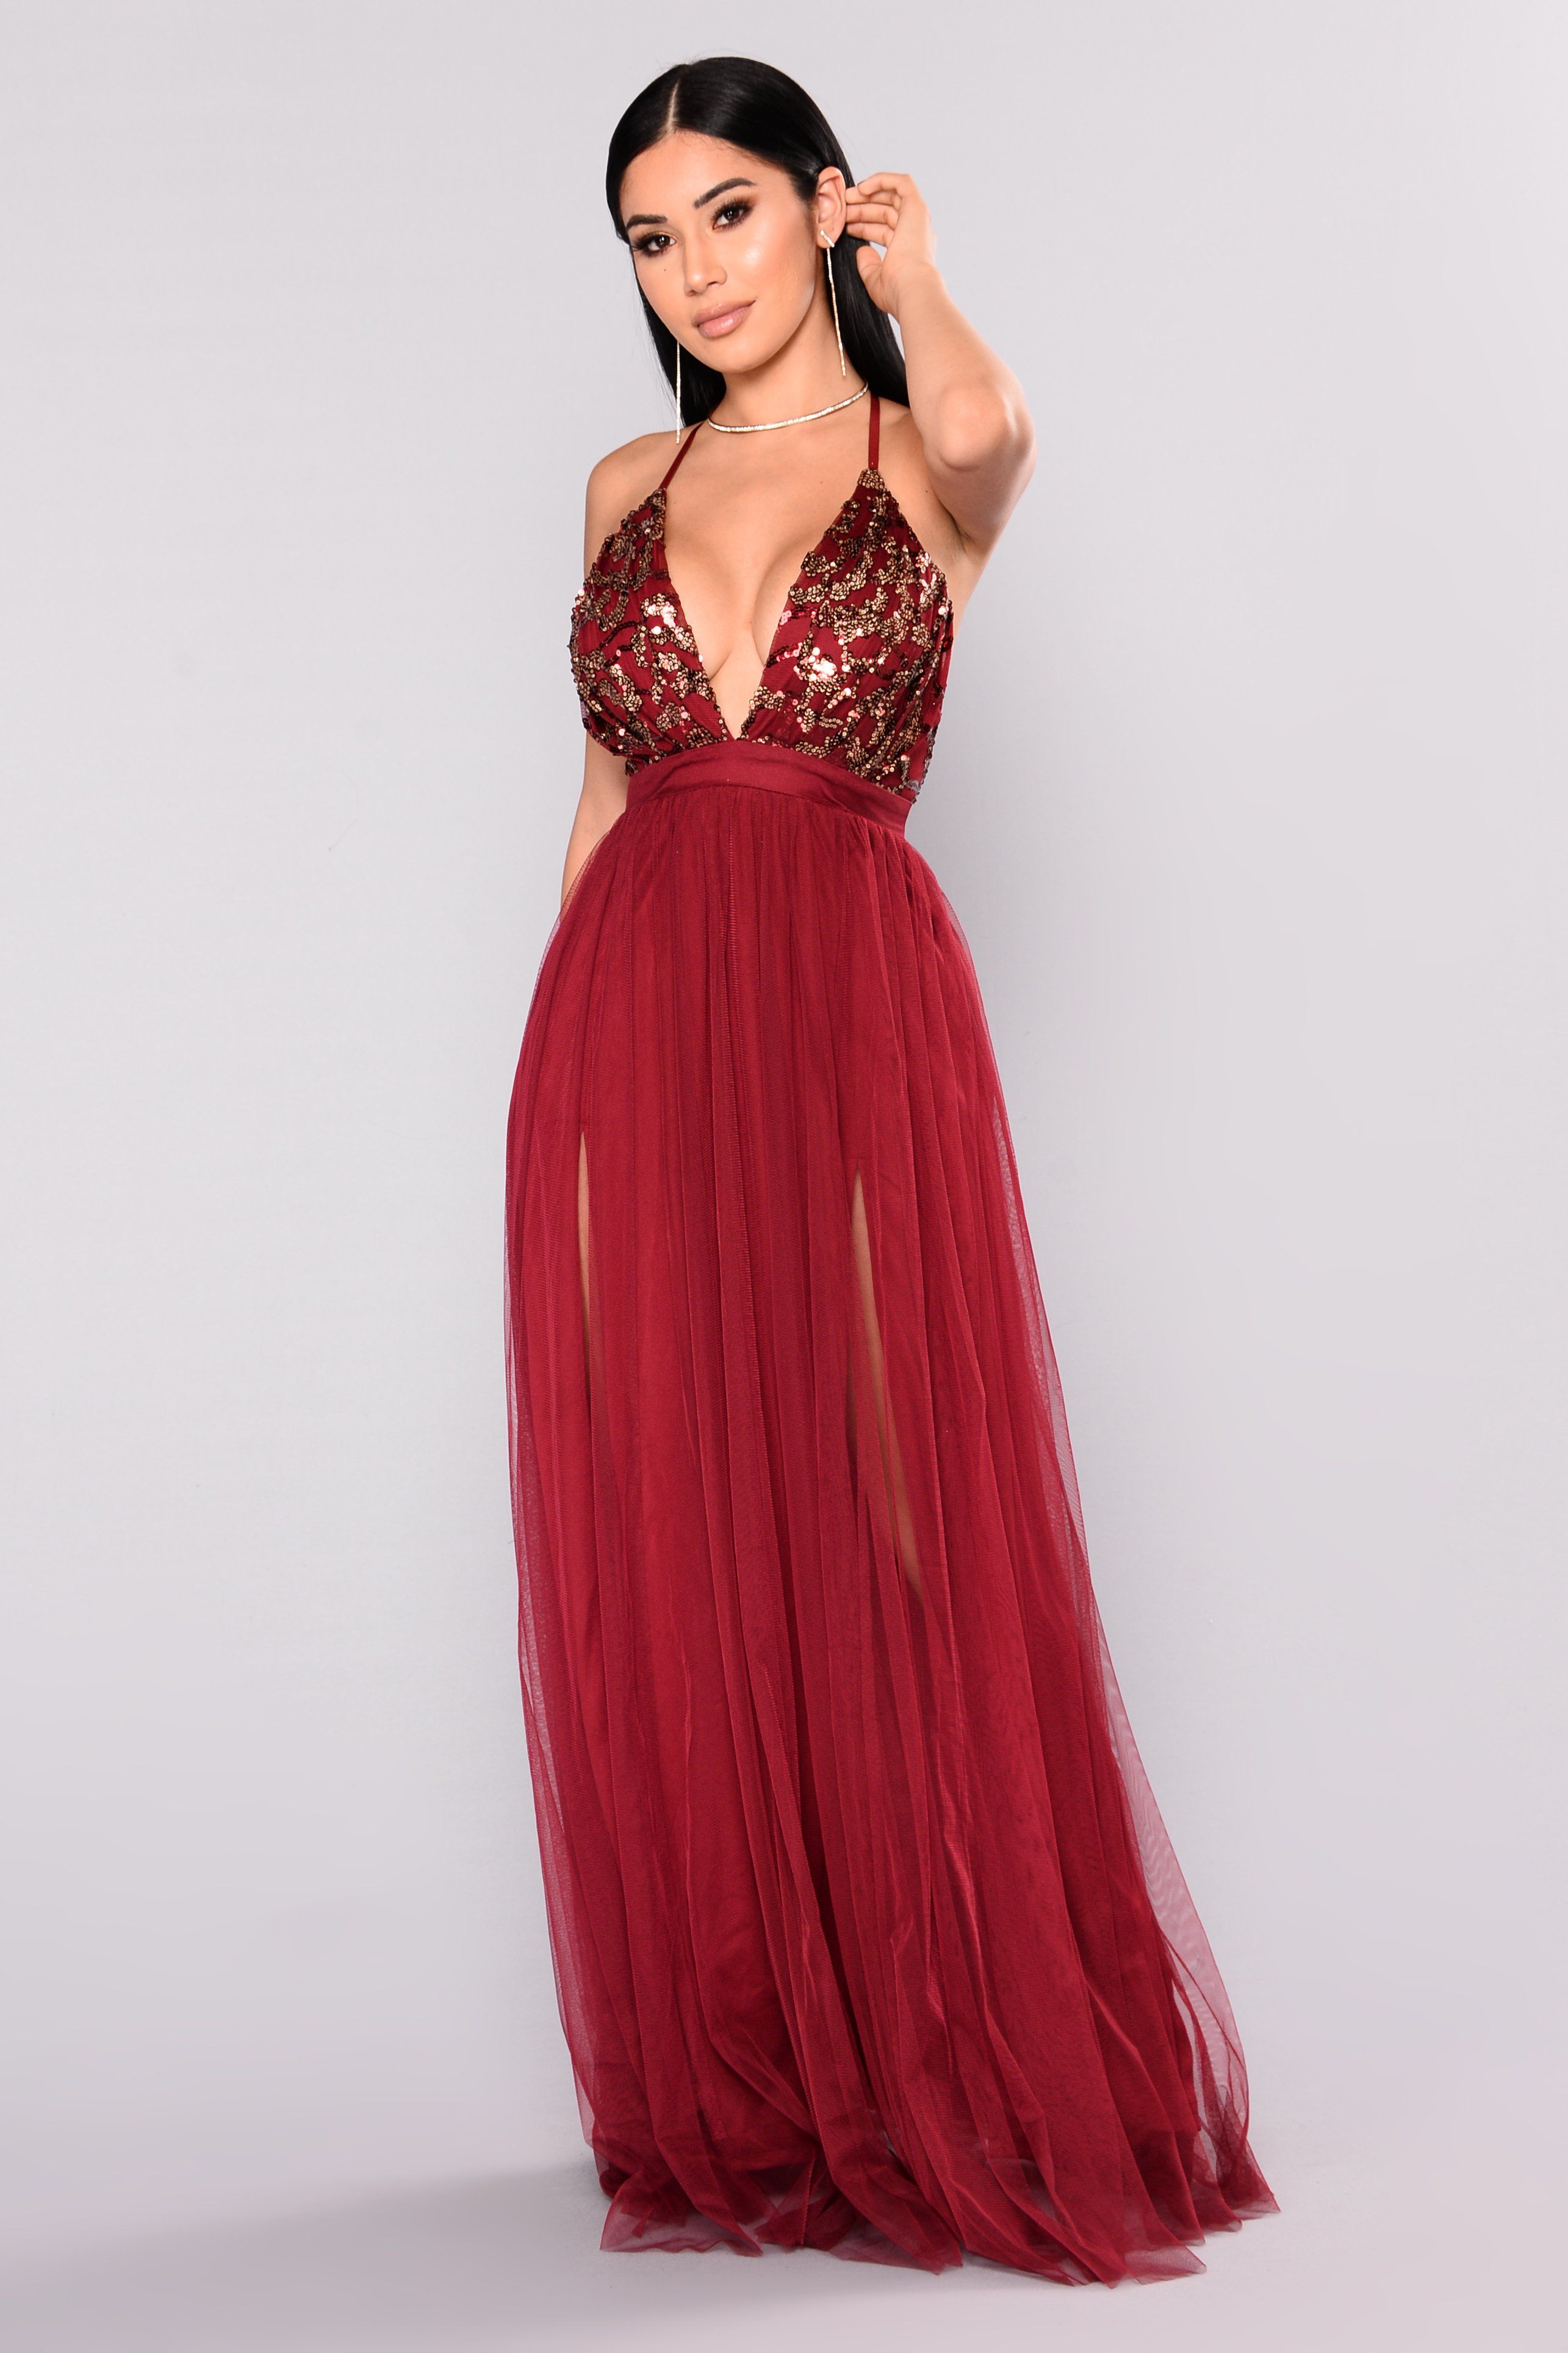 76f63f99a7 Twinkle In Your Eyes Maxi Dress - Burgundy in 2019